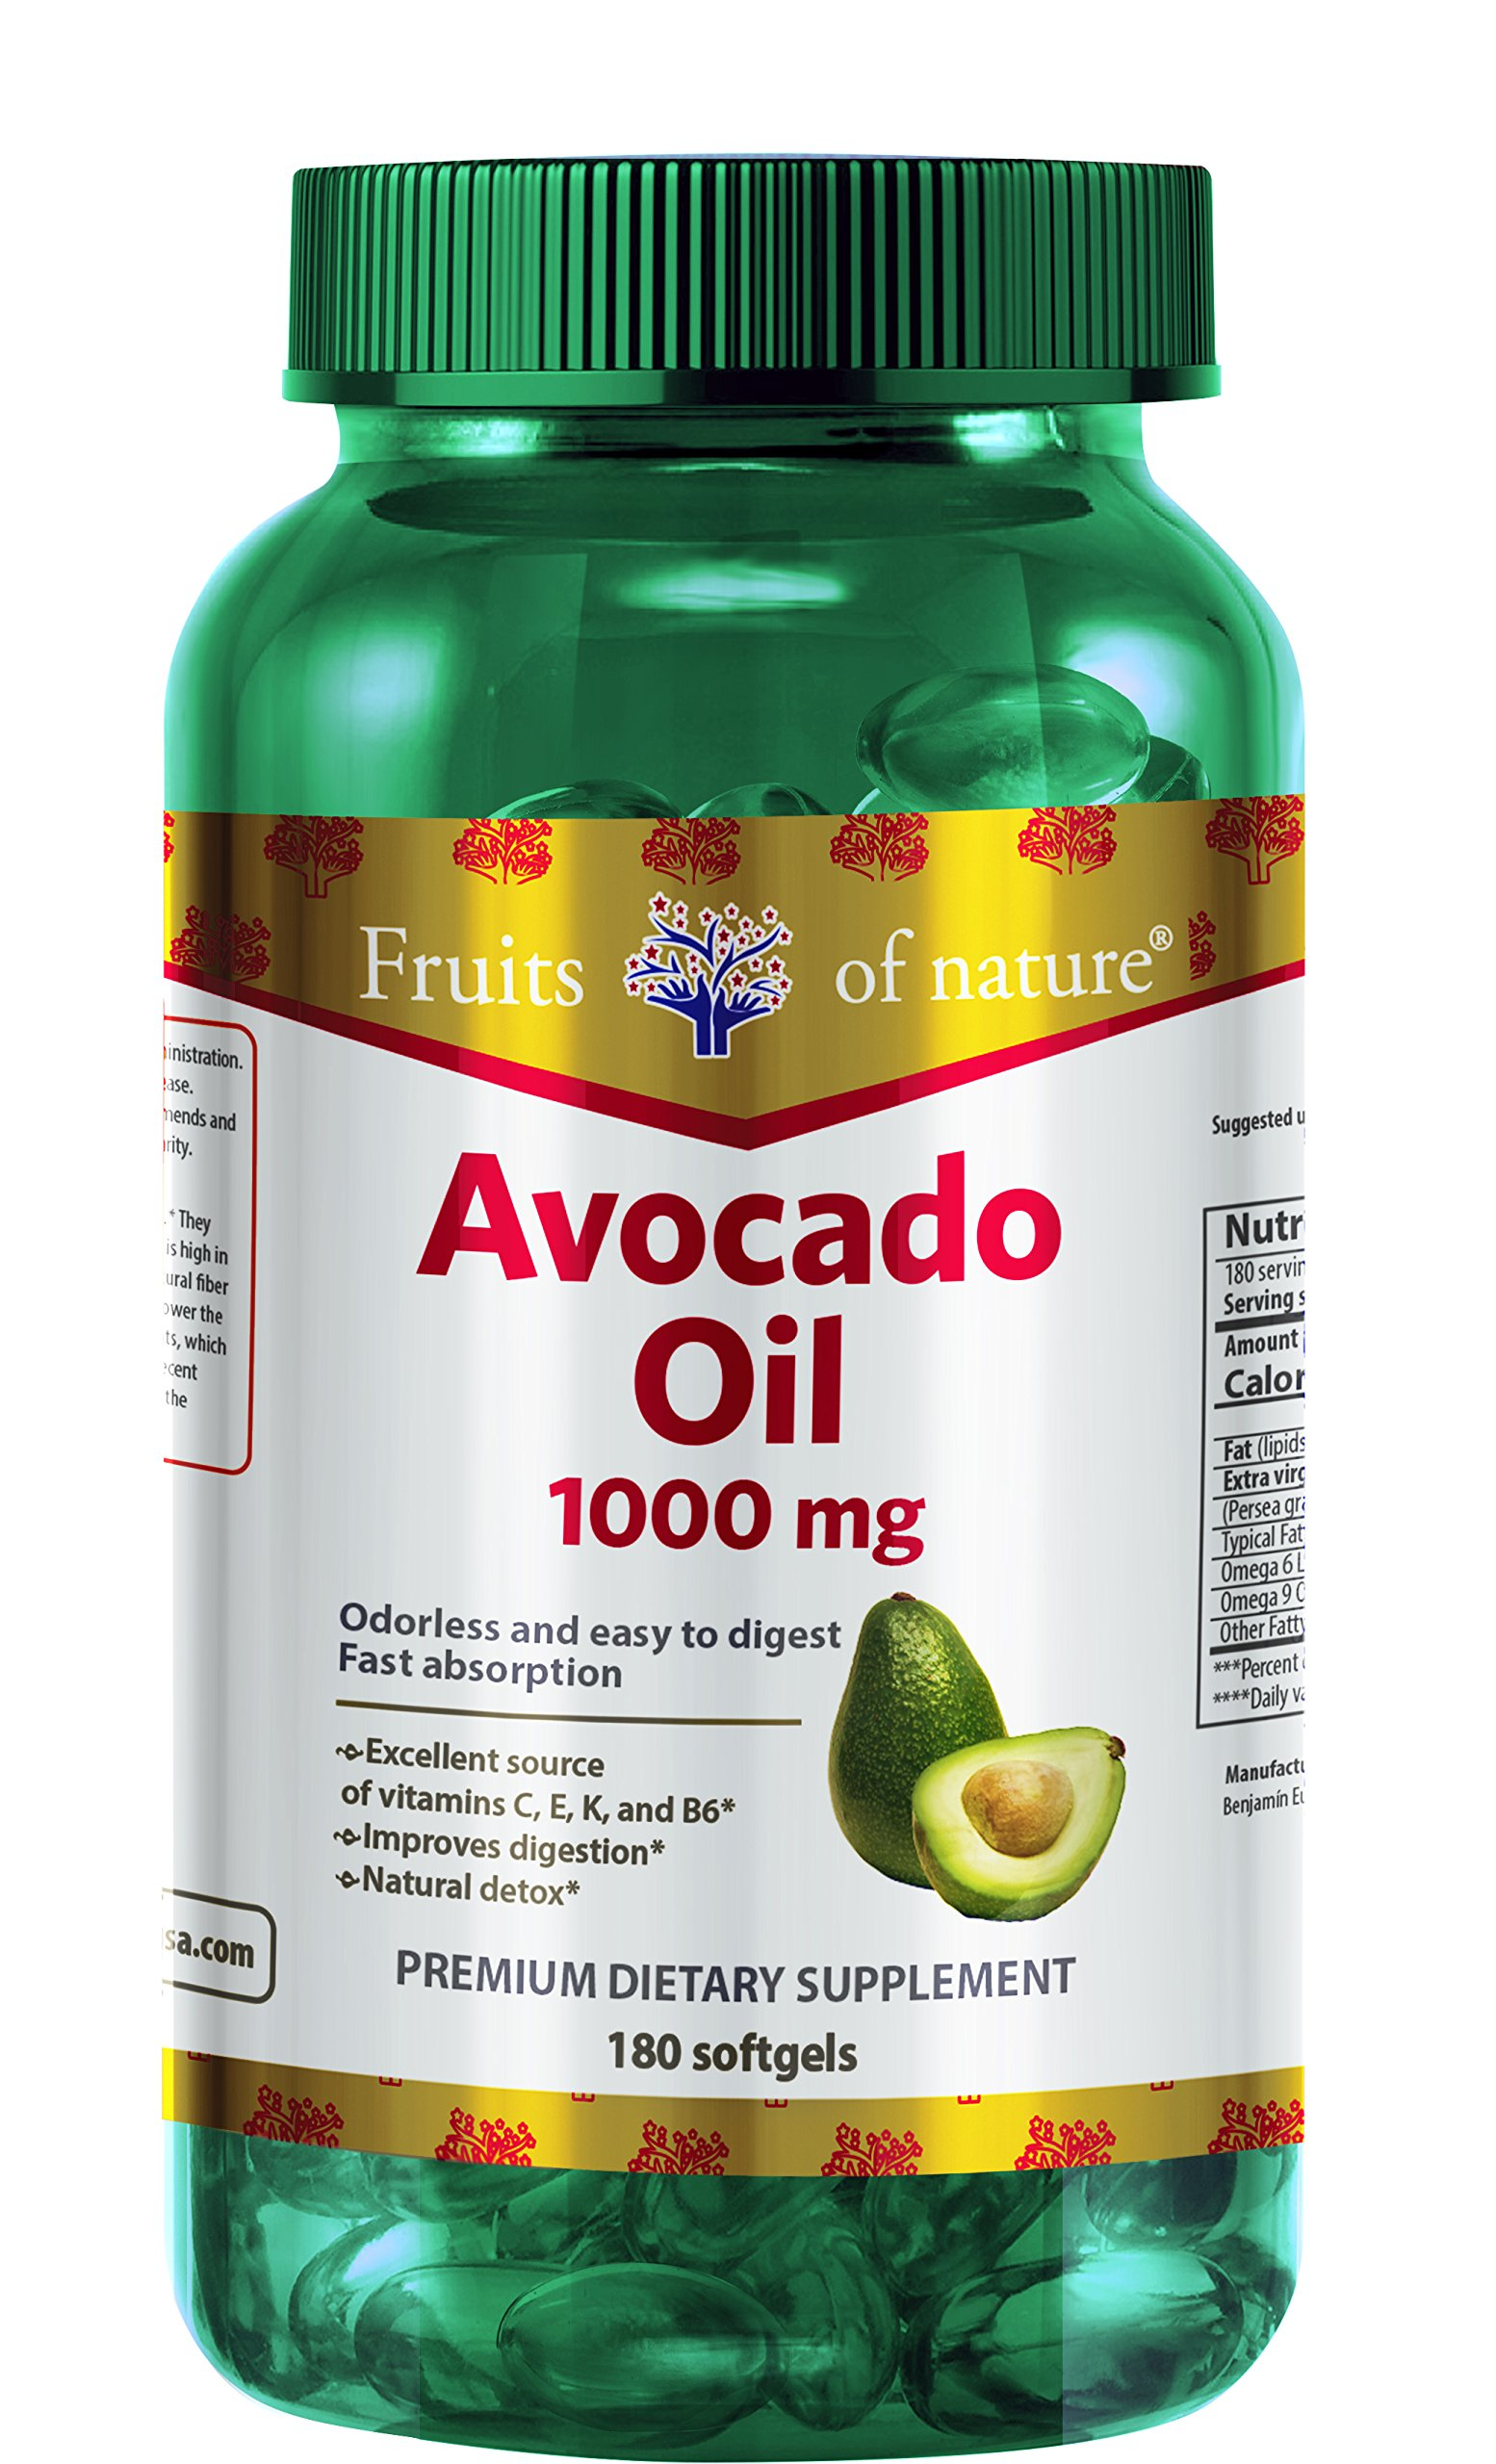 Avocado Oil Capsules 1000 mg - Organic, Extra Virgin, and Cold Pressed Quick Release softgels - Premium Frutal Dietary Supplement-by Fruits of Nature